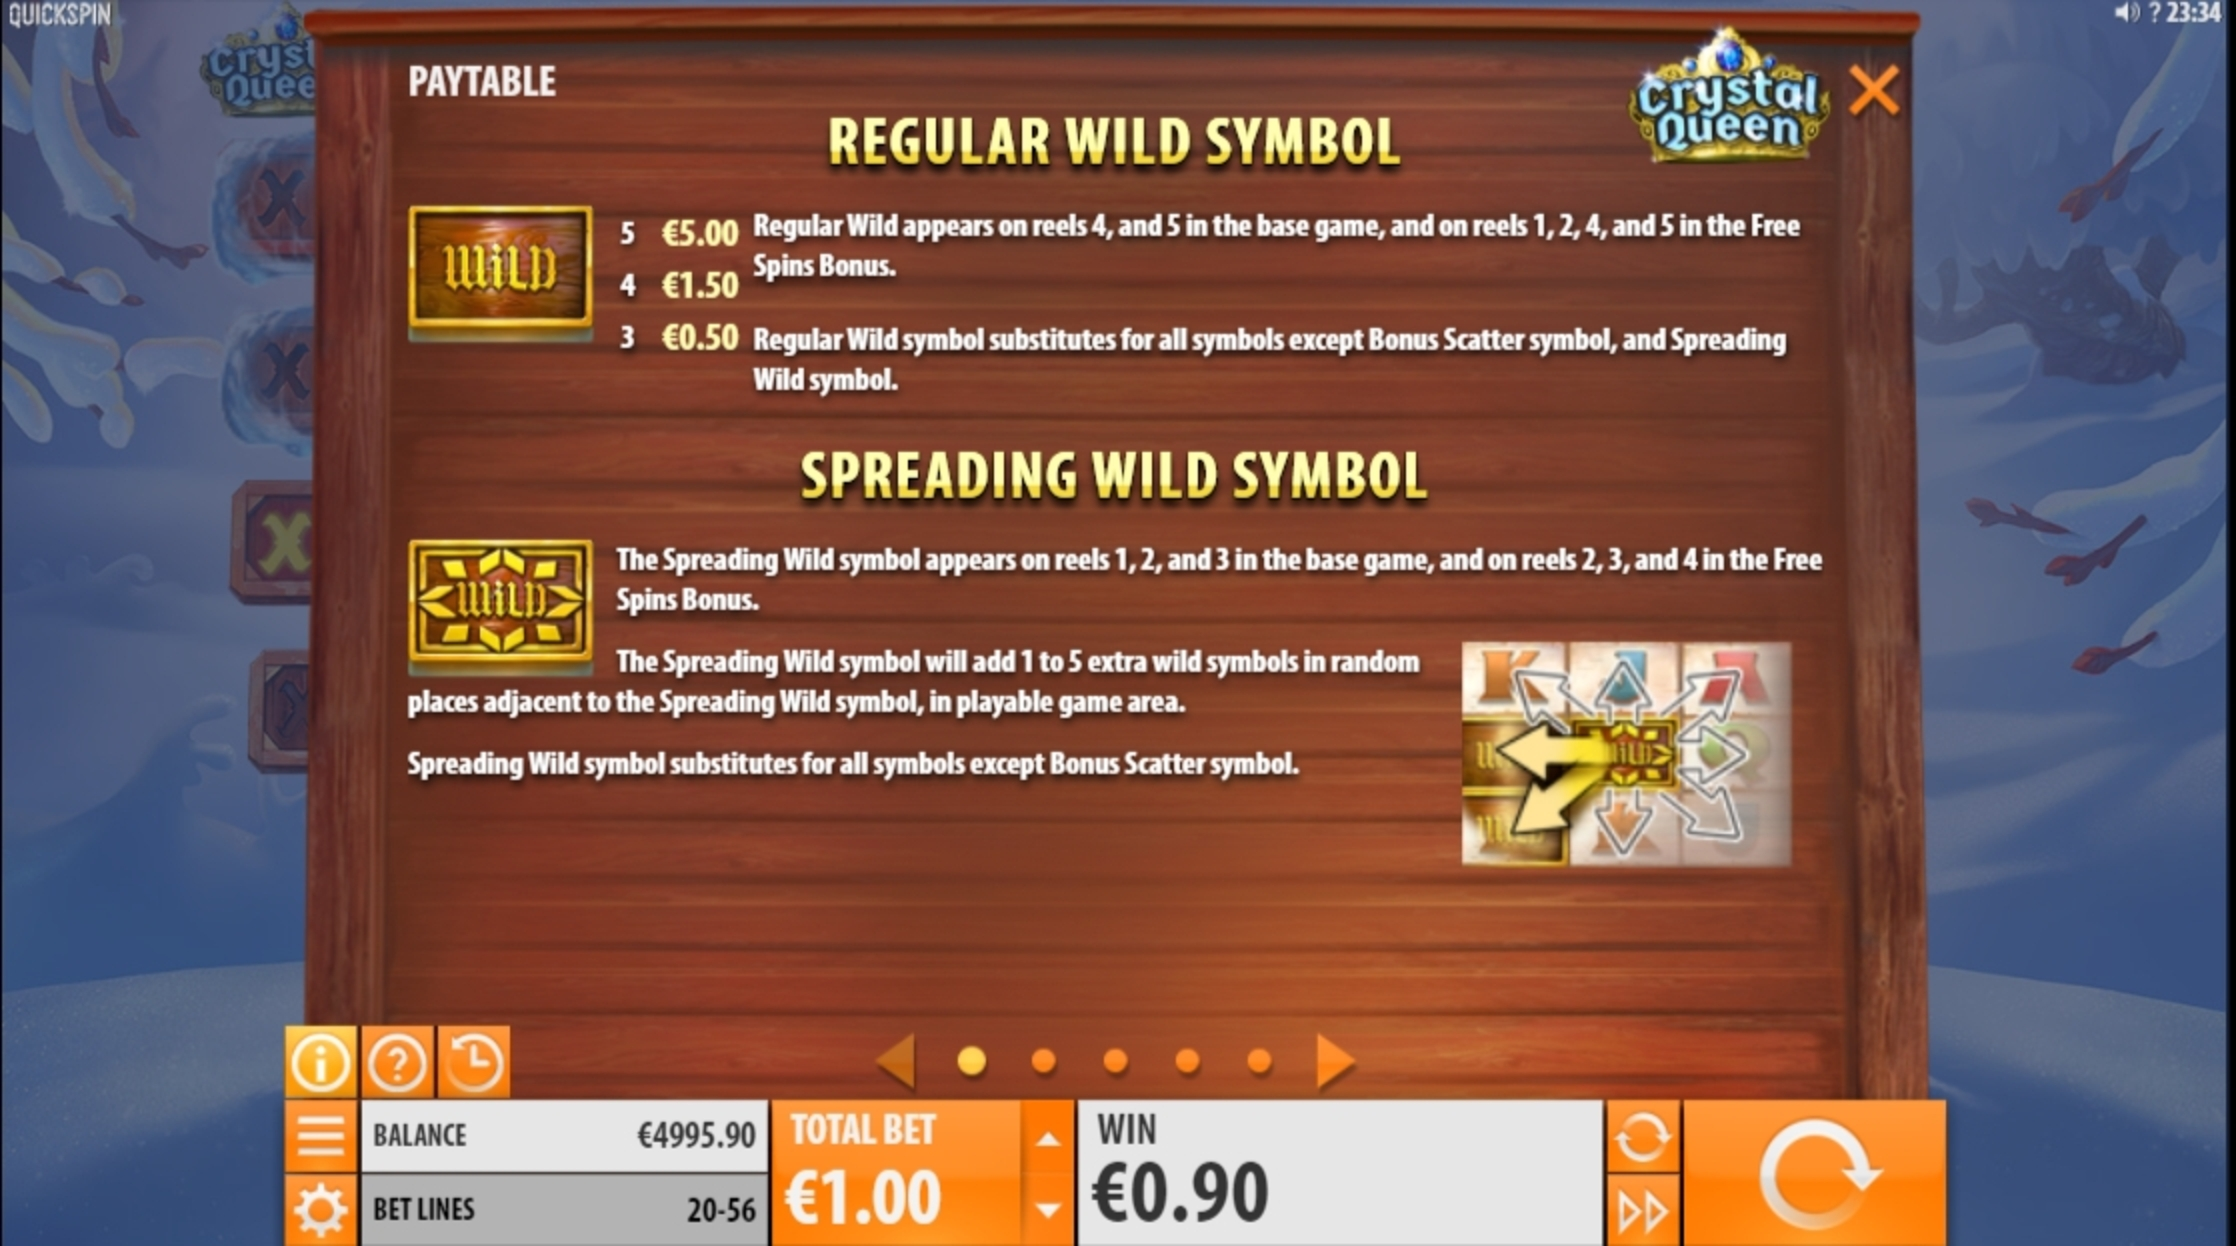 Info of Crystal Queen Slot Game by Quickspin